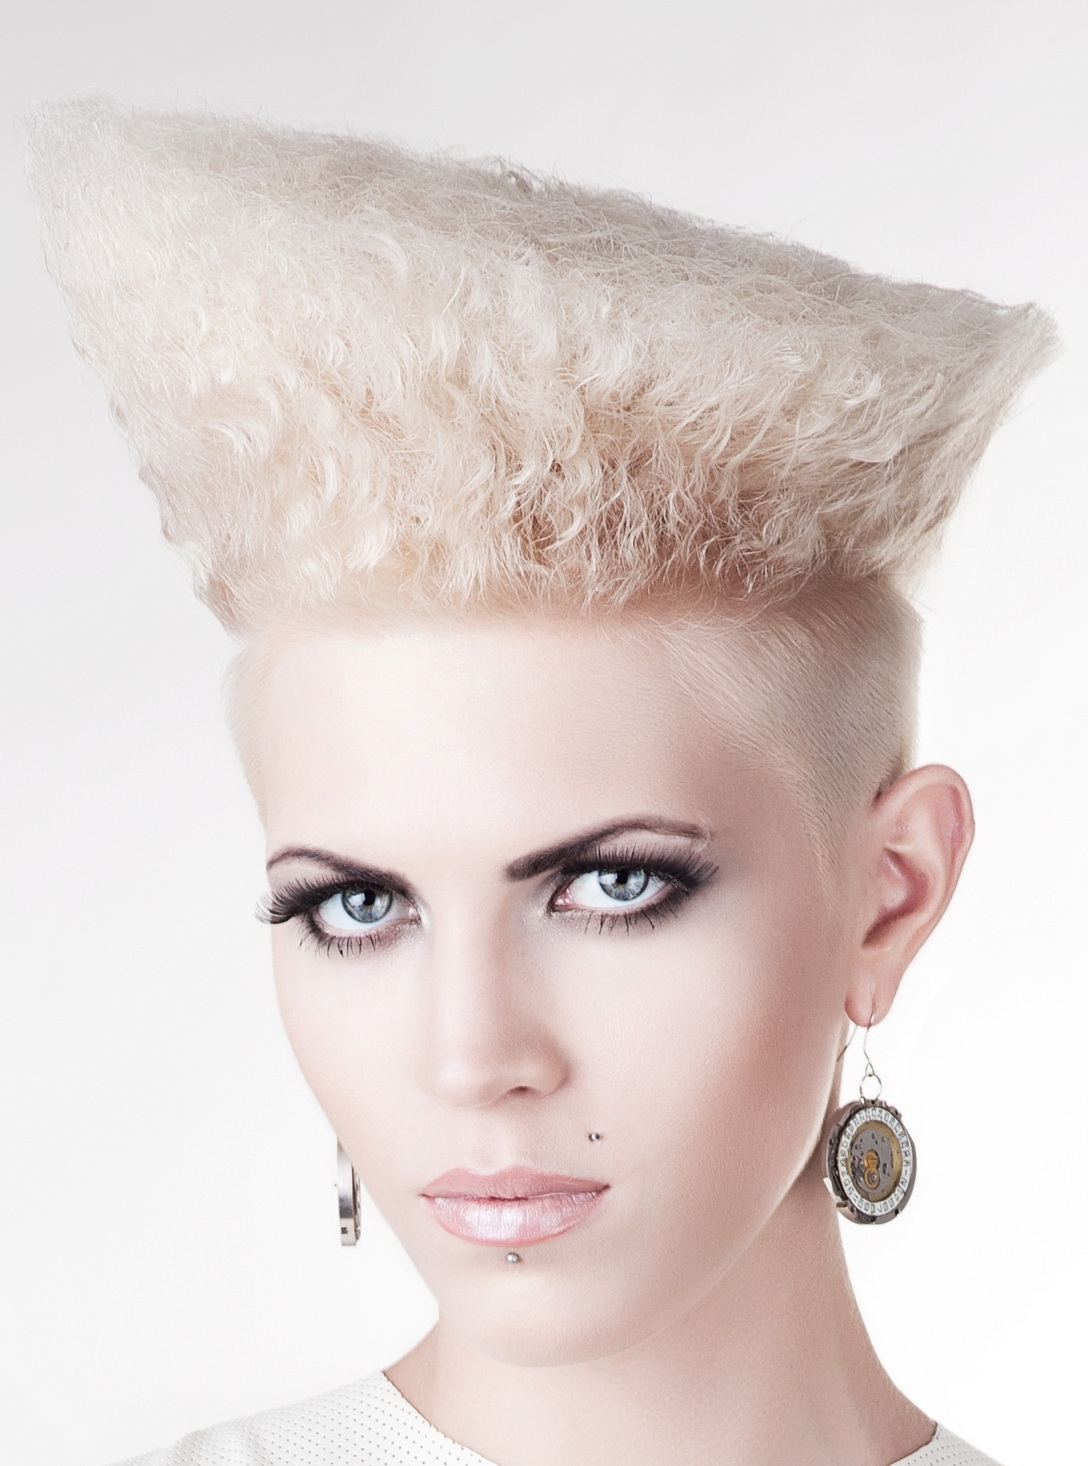 Punk Curly Hair Style With Undercut Major Guile Inspired Look 2018 Throughout Undercut Hairstyles For Curly Hair (View 15 of 25)